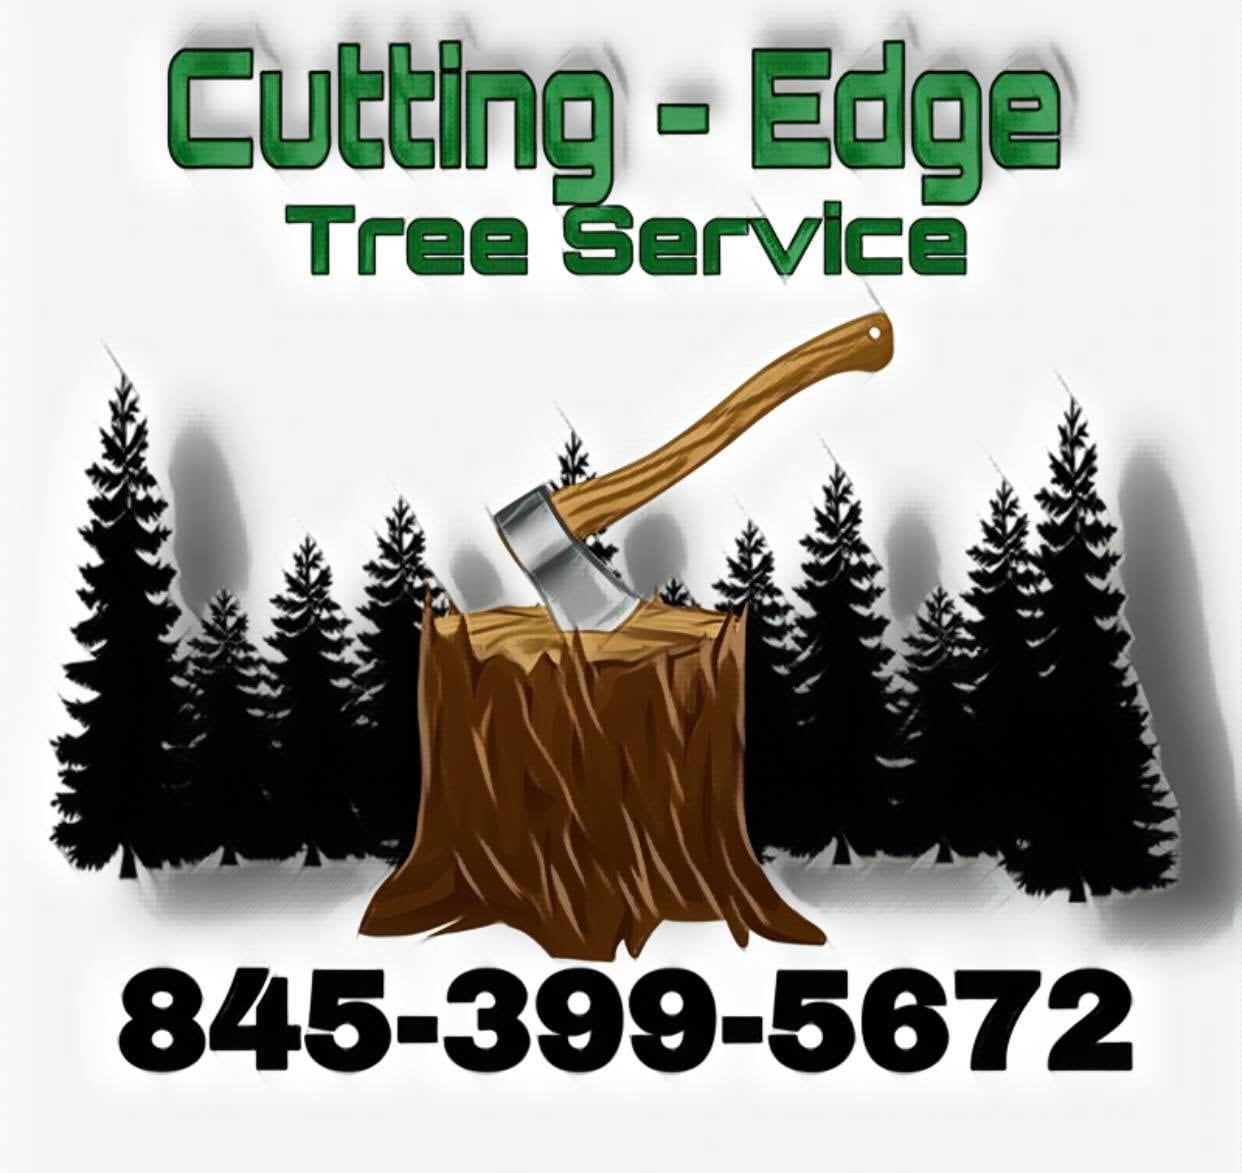 Cutting Edge Tree Service